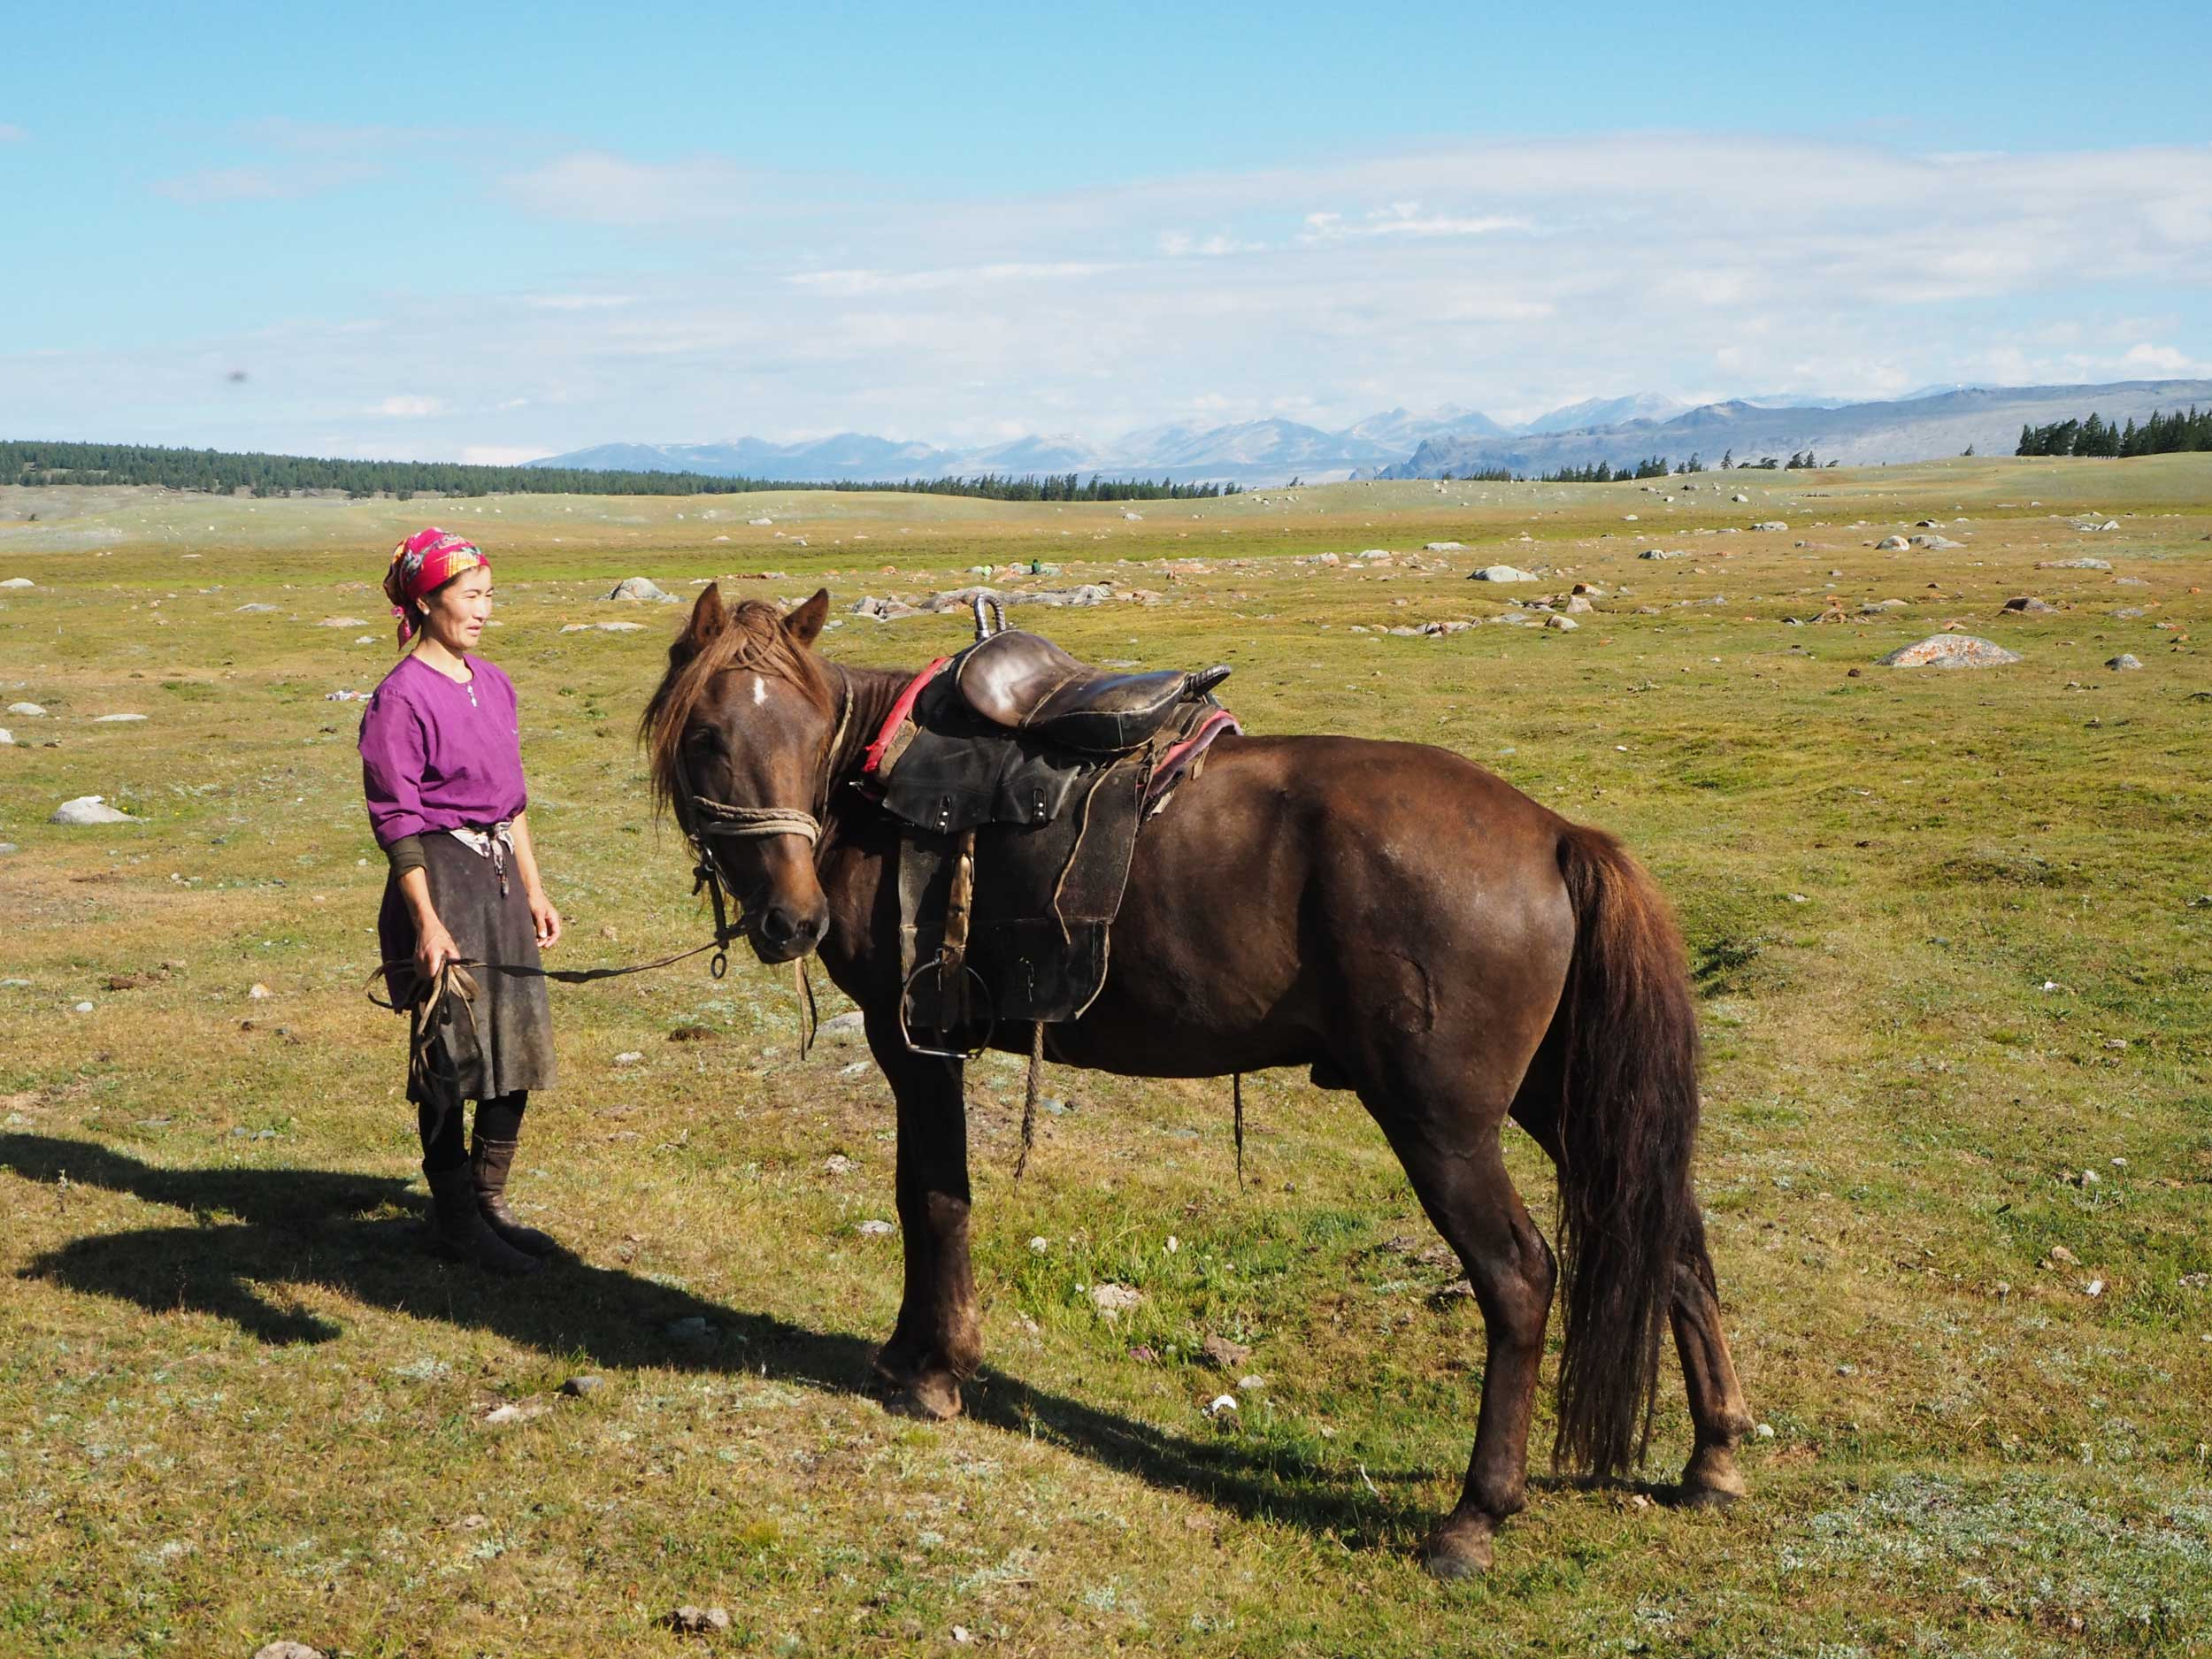 Mongolian woman and a brown horse, Mongolia